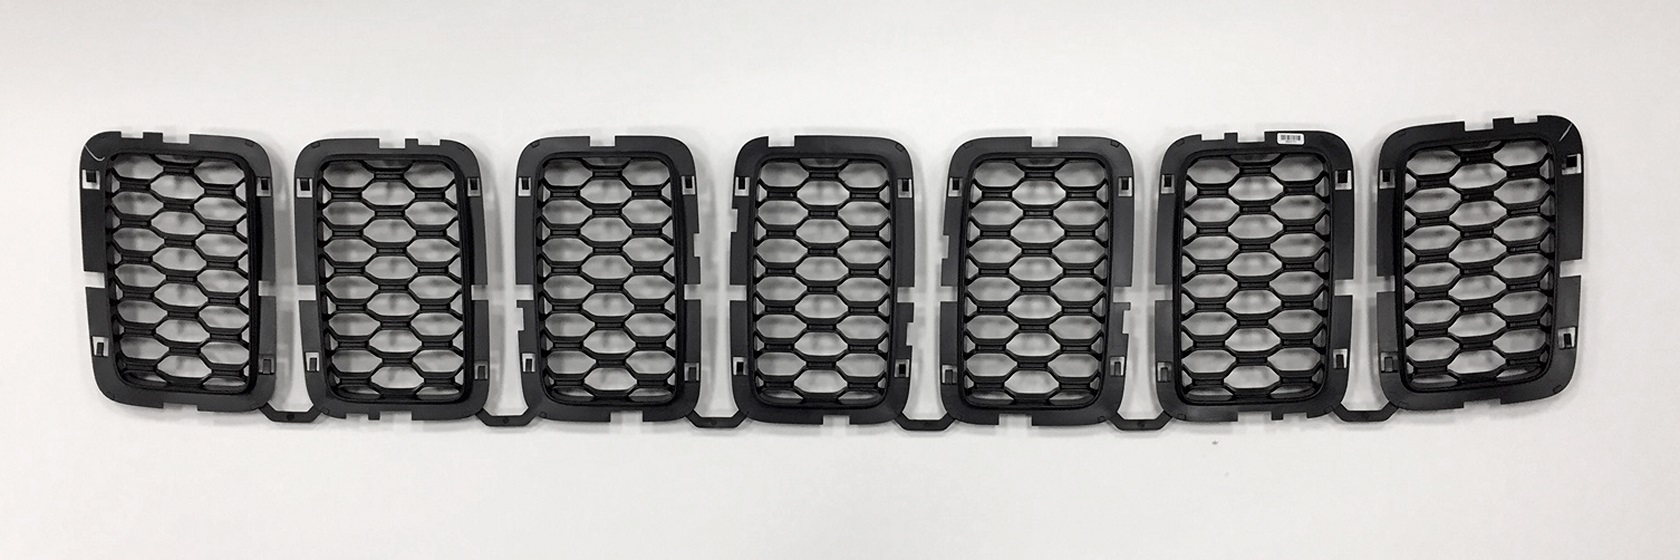 Mopar Black Honeycomb Grill Inserts for 2017-2020 Grand Cherokee WK2